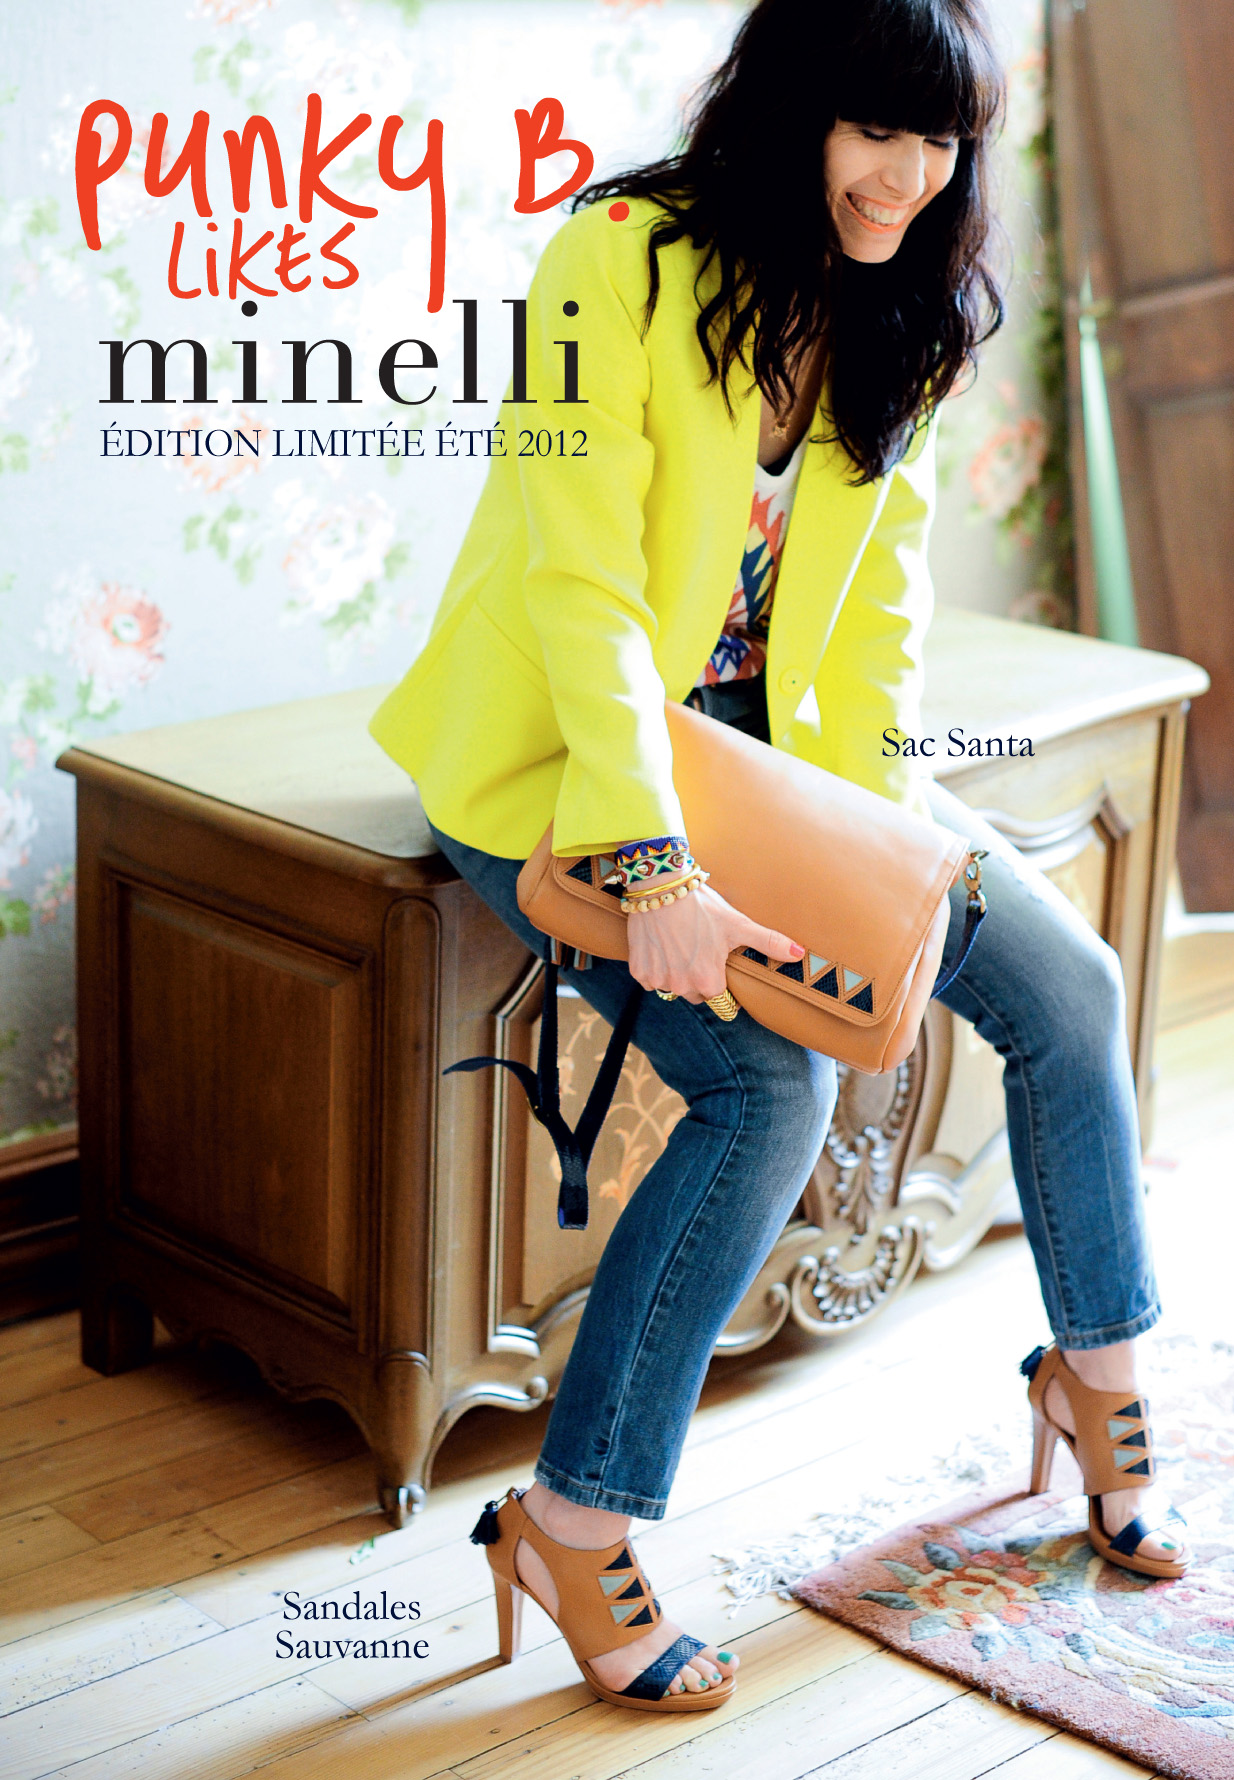 Punky b likes Minelli  la collection! - Punky B - Blog Mode ddc154c8884